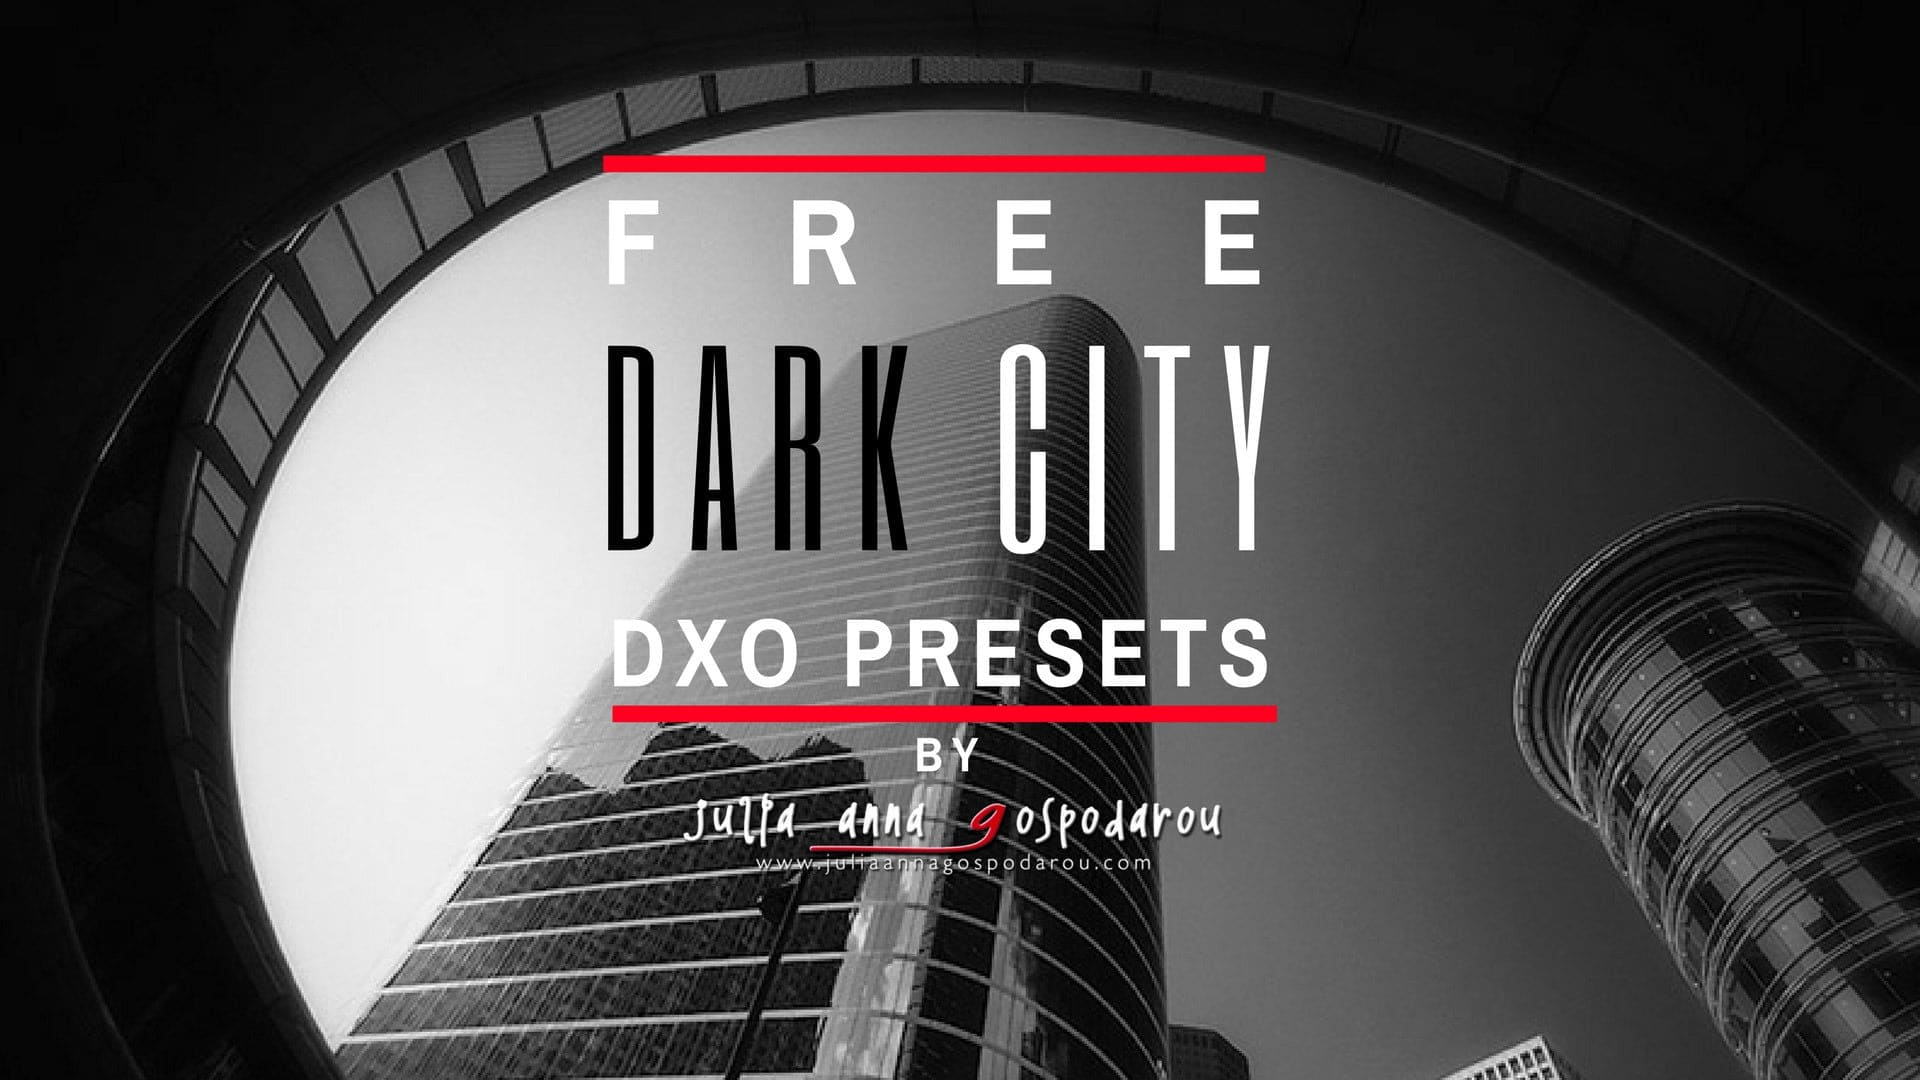 This is the new FREE extended 2019 version of the original fine art DxO Preset Series Dark City, created by Julia Anna Gospodarou. Μany fine art photographers have used these presets and they created outstanding fine art photography with them. I am using them myself extensively in my work. Get them FREE from the link above.